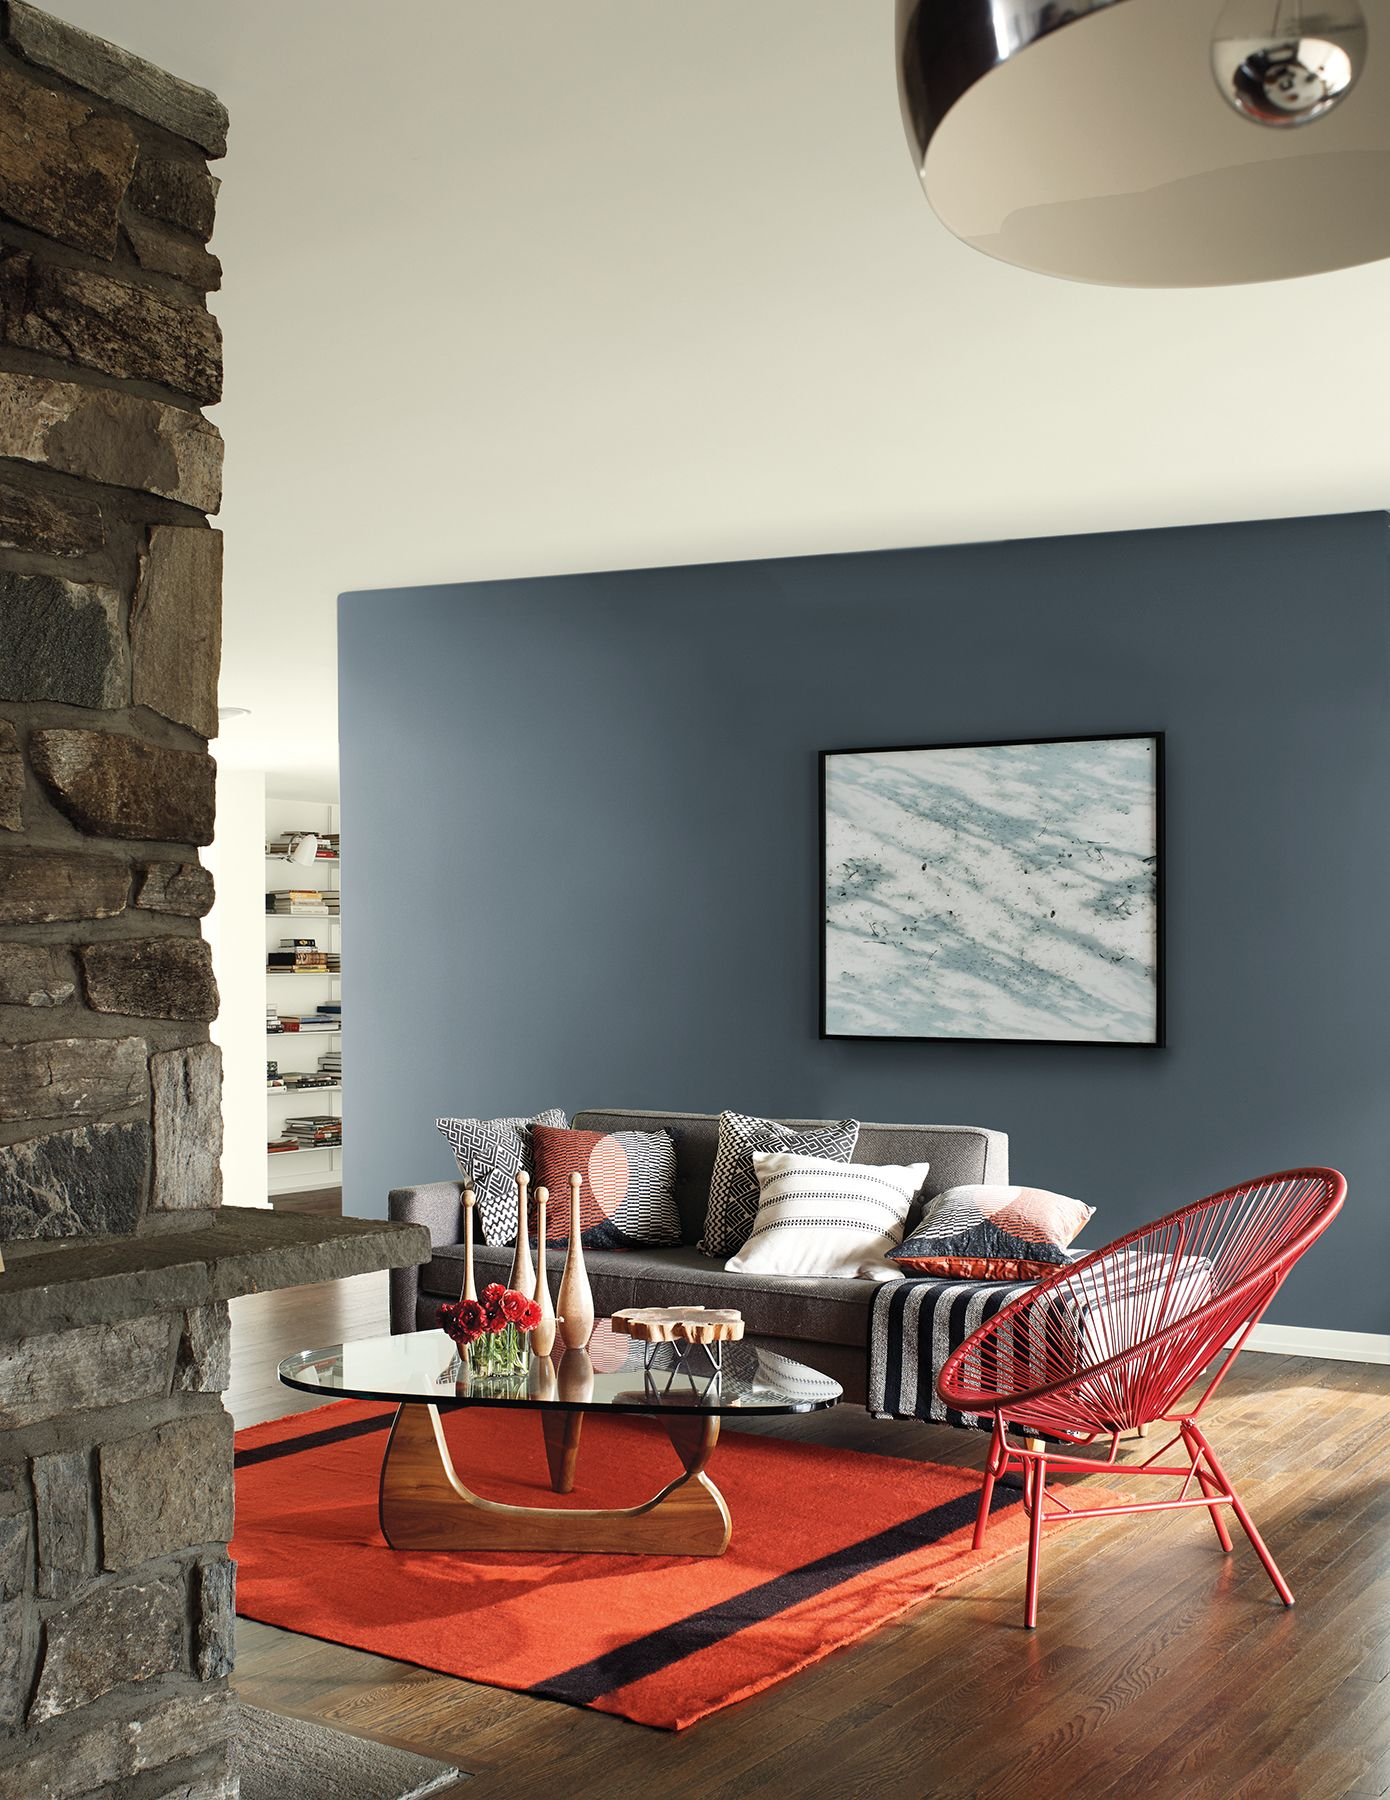 Benjamin moore wolf gray paint color 2127‐40 color trends 2018